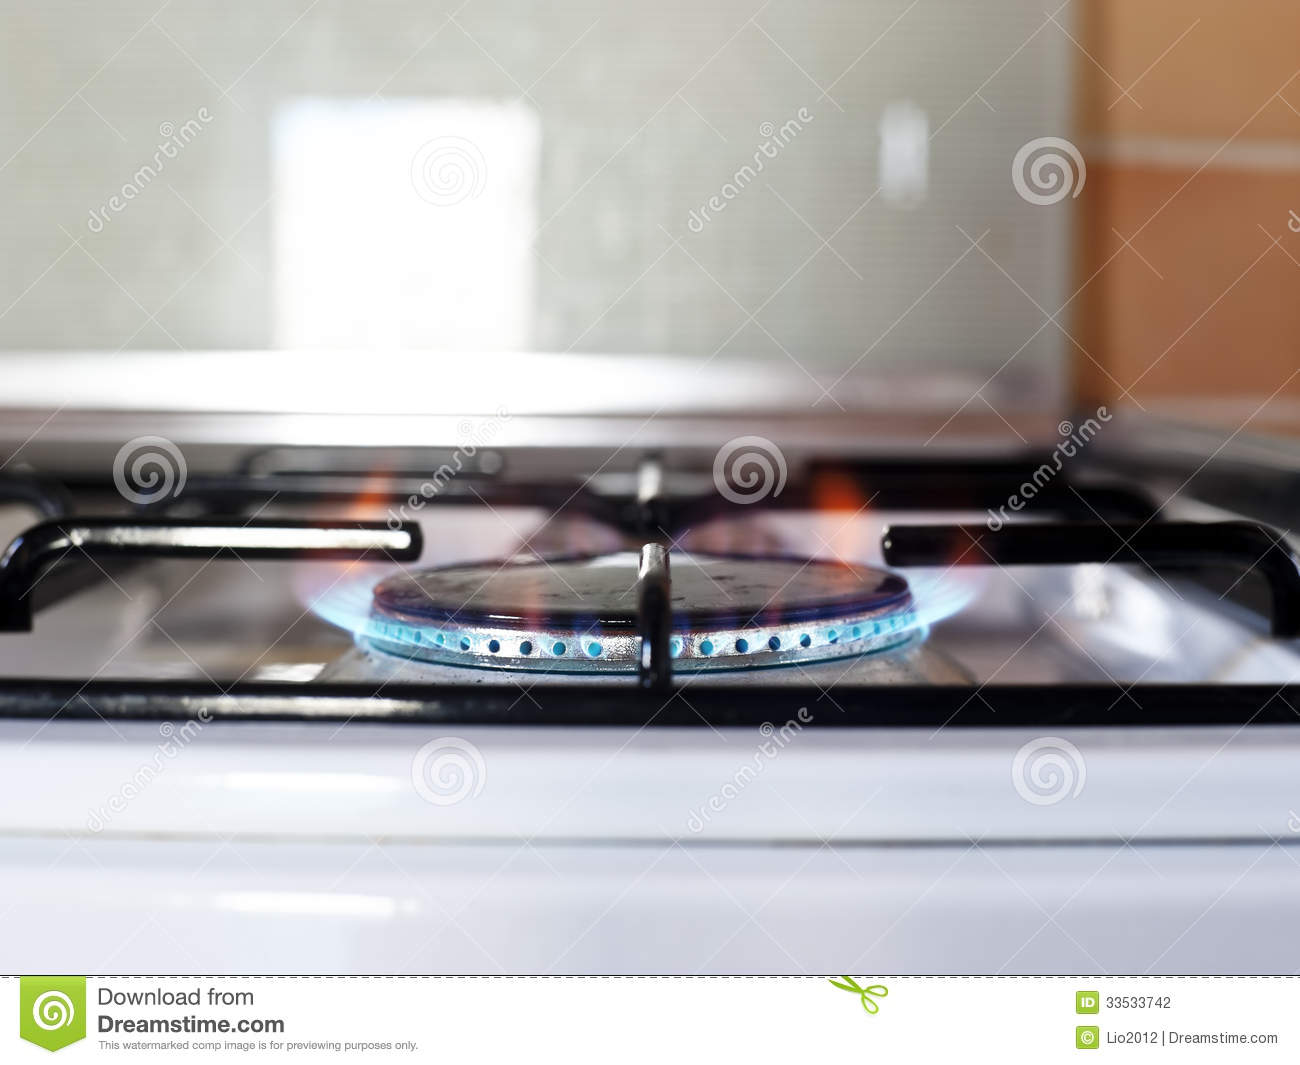 Gas Kitchen Stove Stock graphy Image